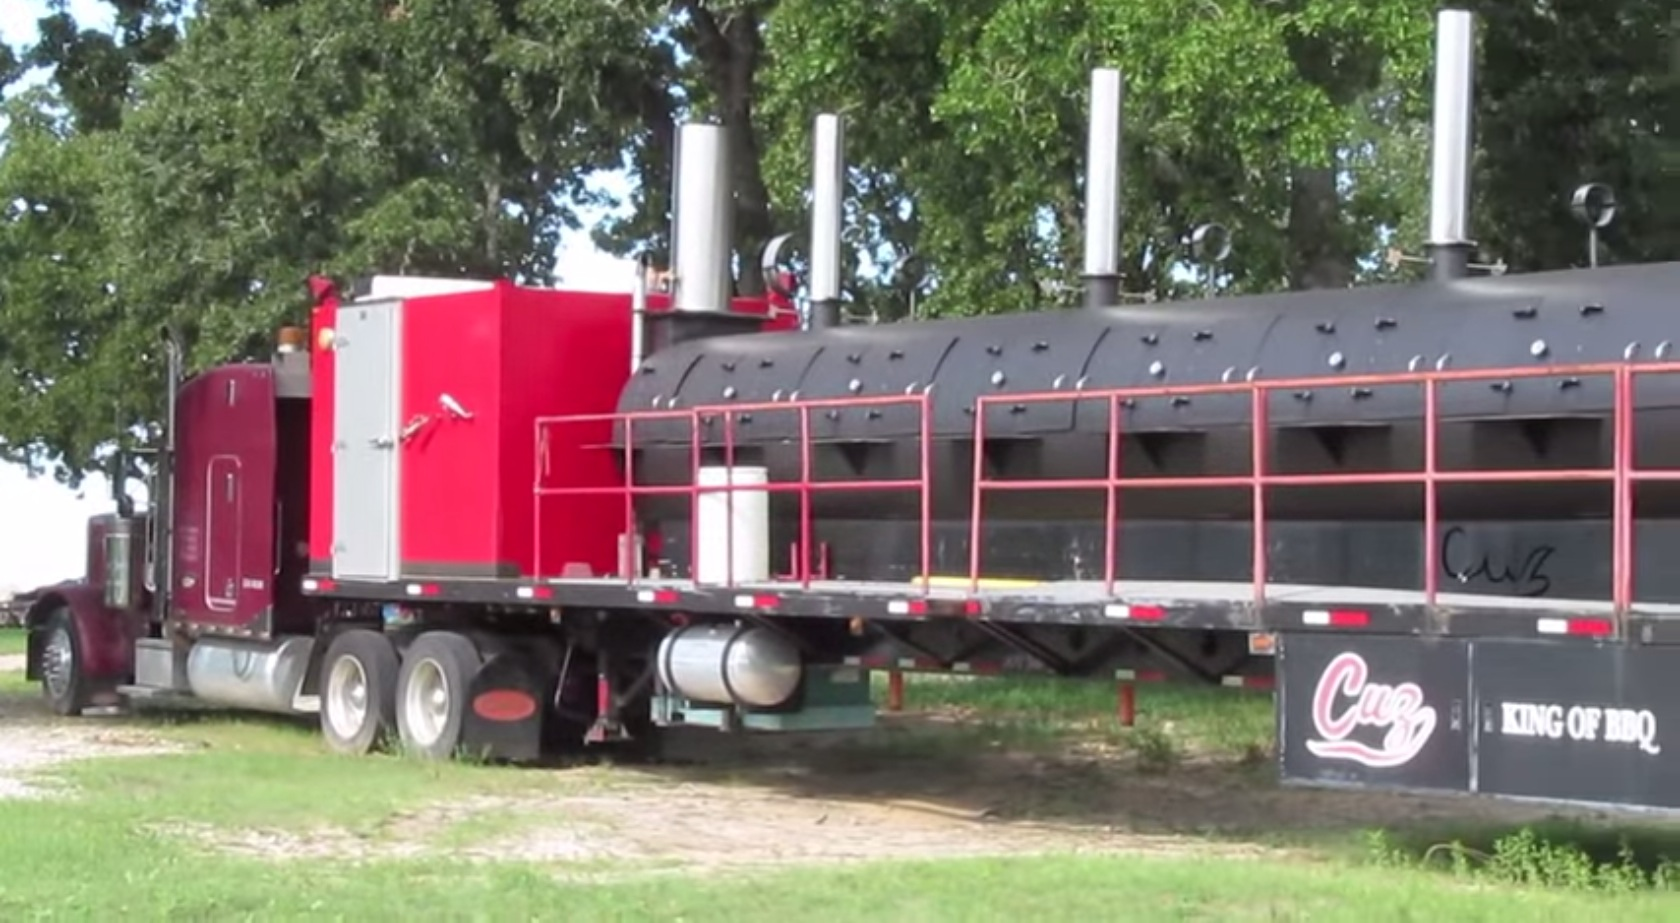 world�s largest bbq pit can cook 4 tons of meat at a time